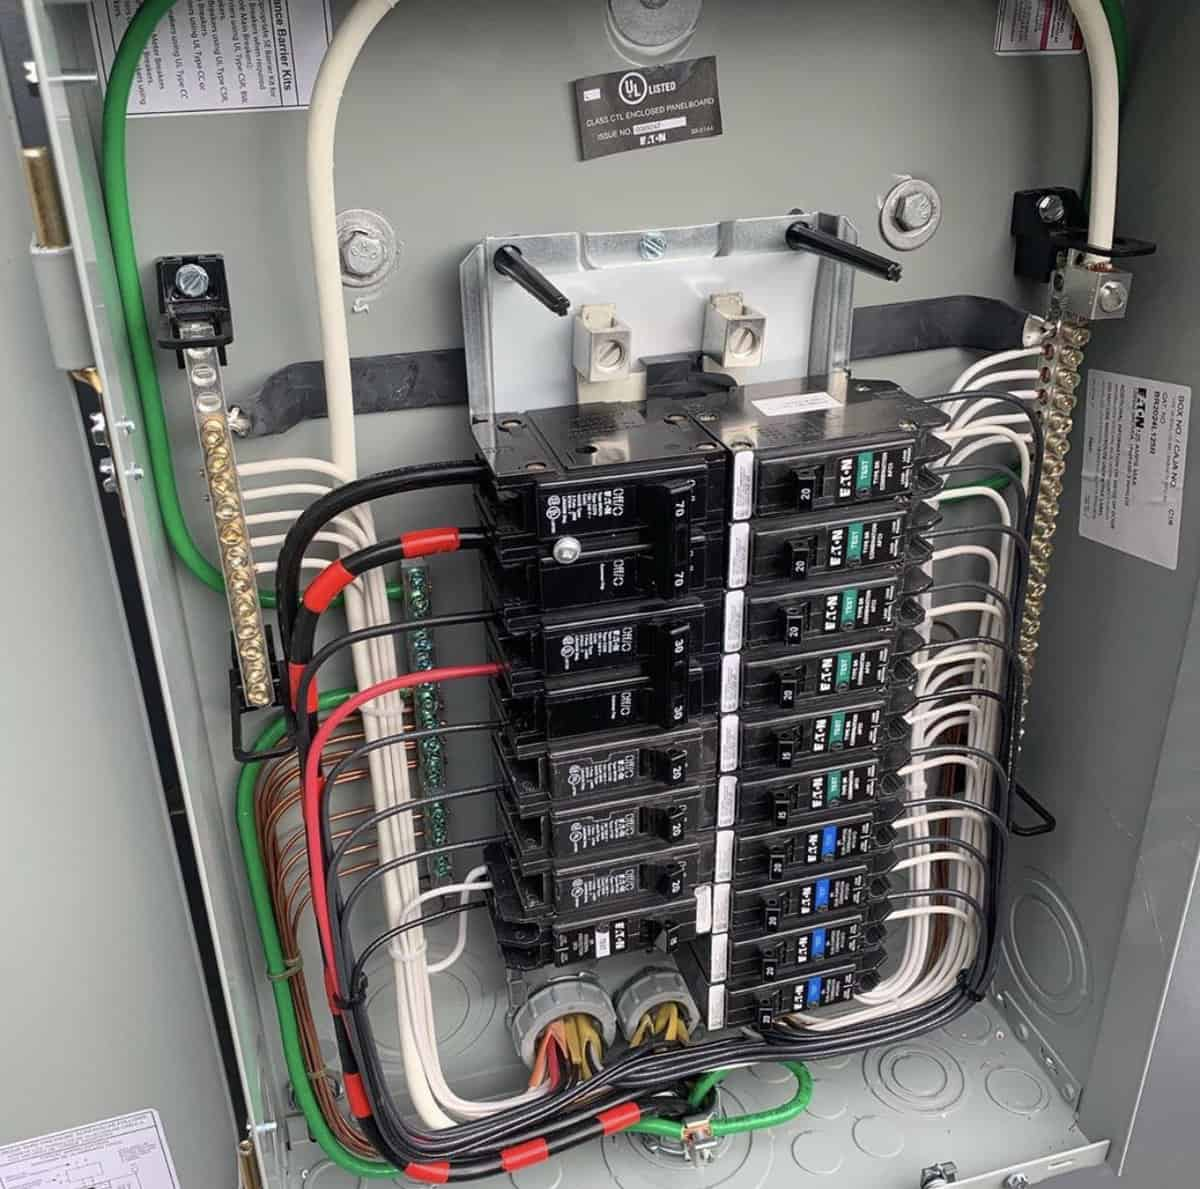 Maui Home Electrical Panel Upgrades Services Electric Maui Nui